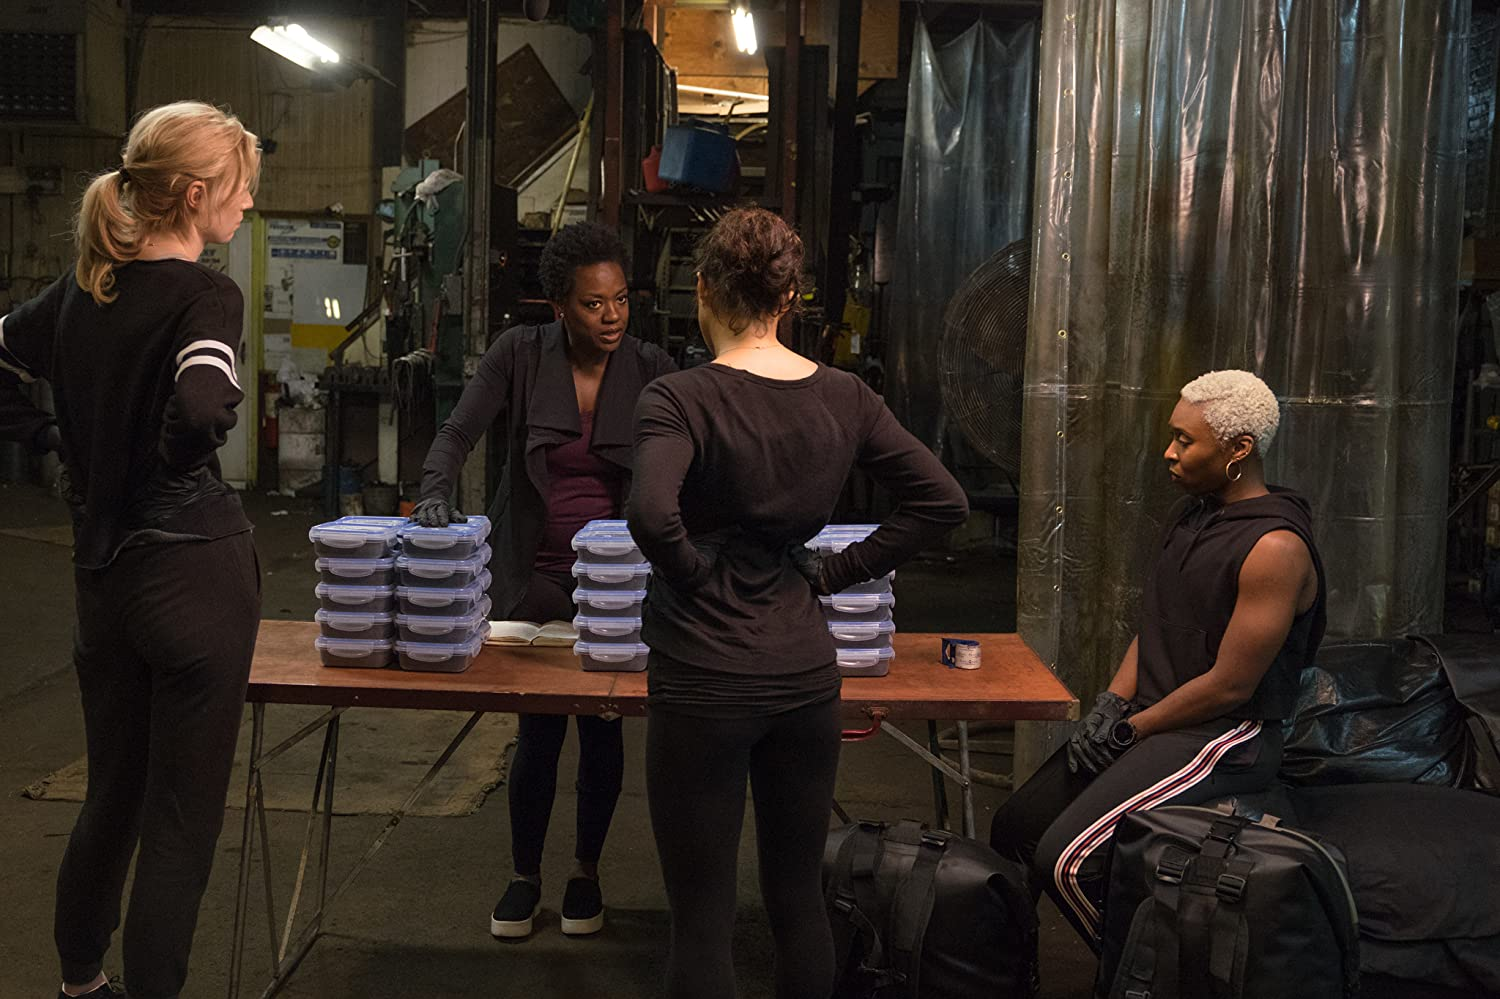 Viola Davis, Michelle Rodriguez, Elizabeth Debicki, and Cynthia Erivo in Widows (2018)